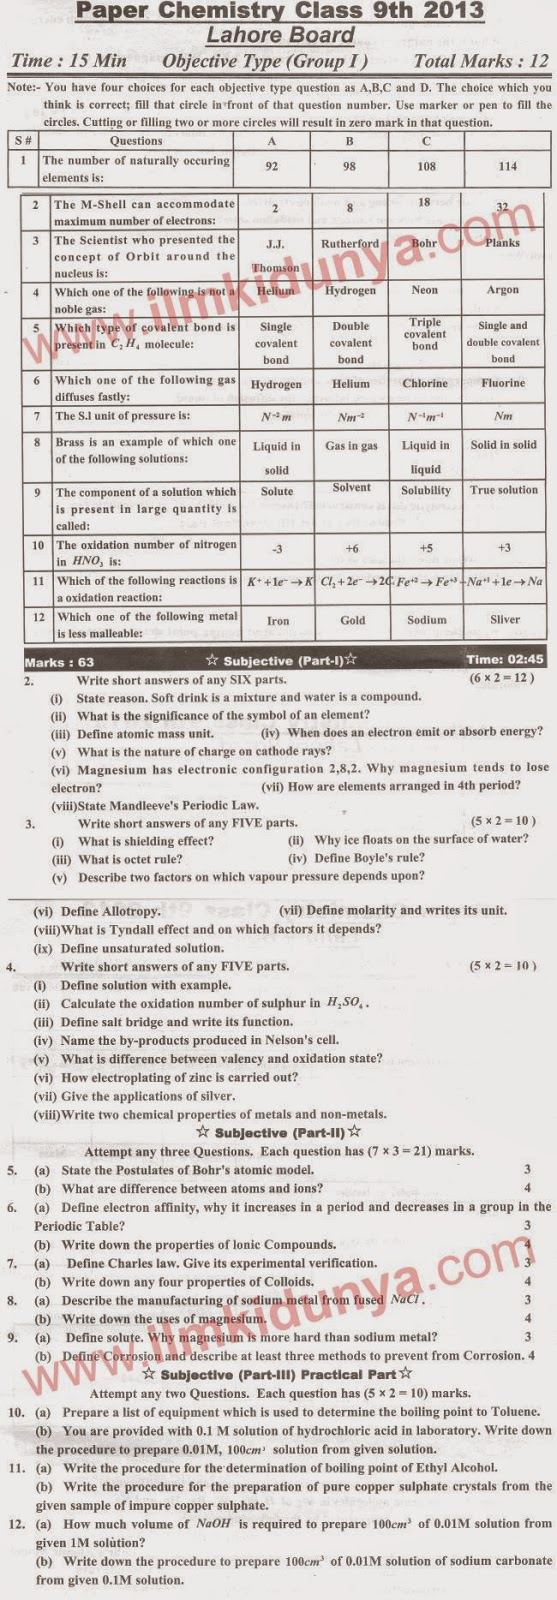 biology guess paper 10th class 2013 lahore board